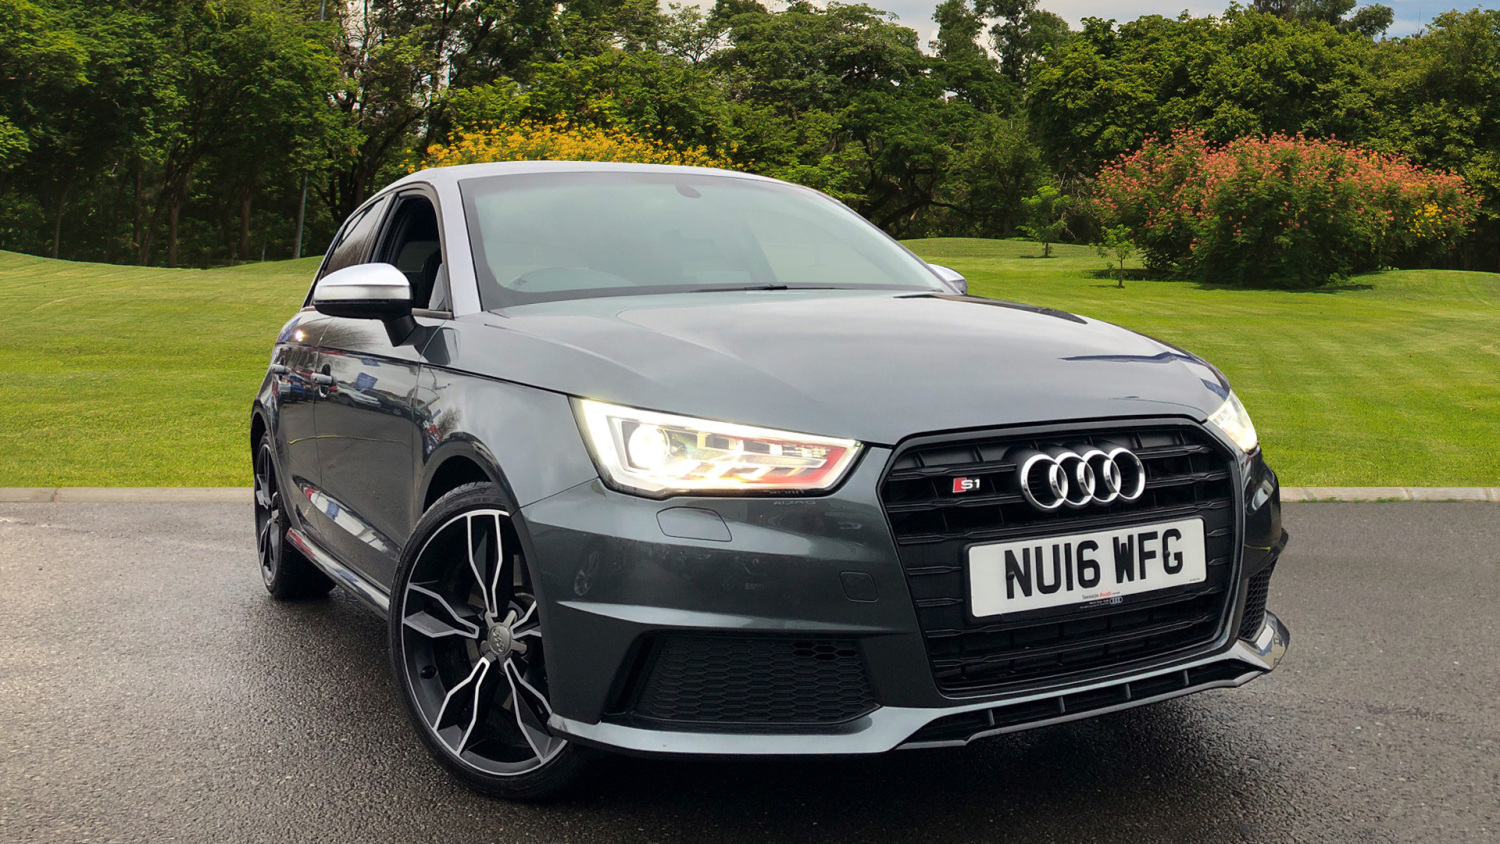 used audi a1 s1 tfsi quattro 5dr petrol hatchback for sale. Black Bedroom Furniture Sets. Home Design Ideas